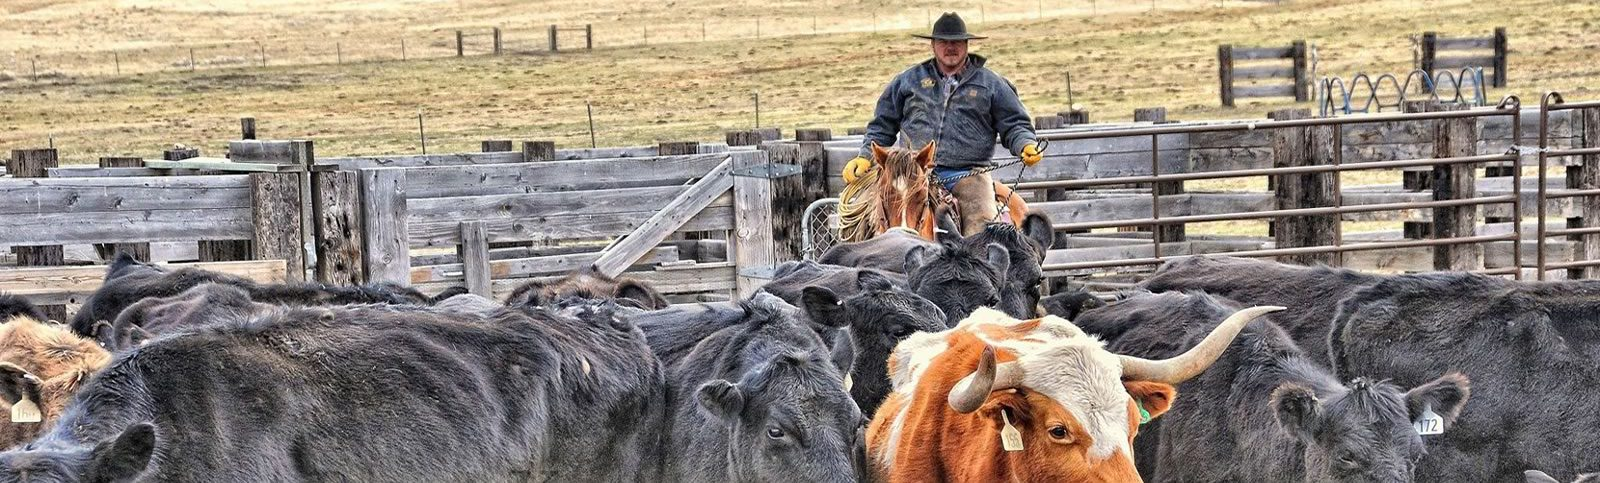 Photo of a cowboy herding cattle in a corral.